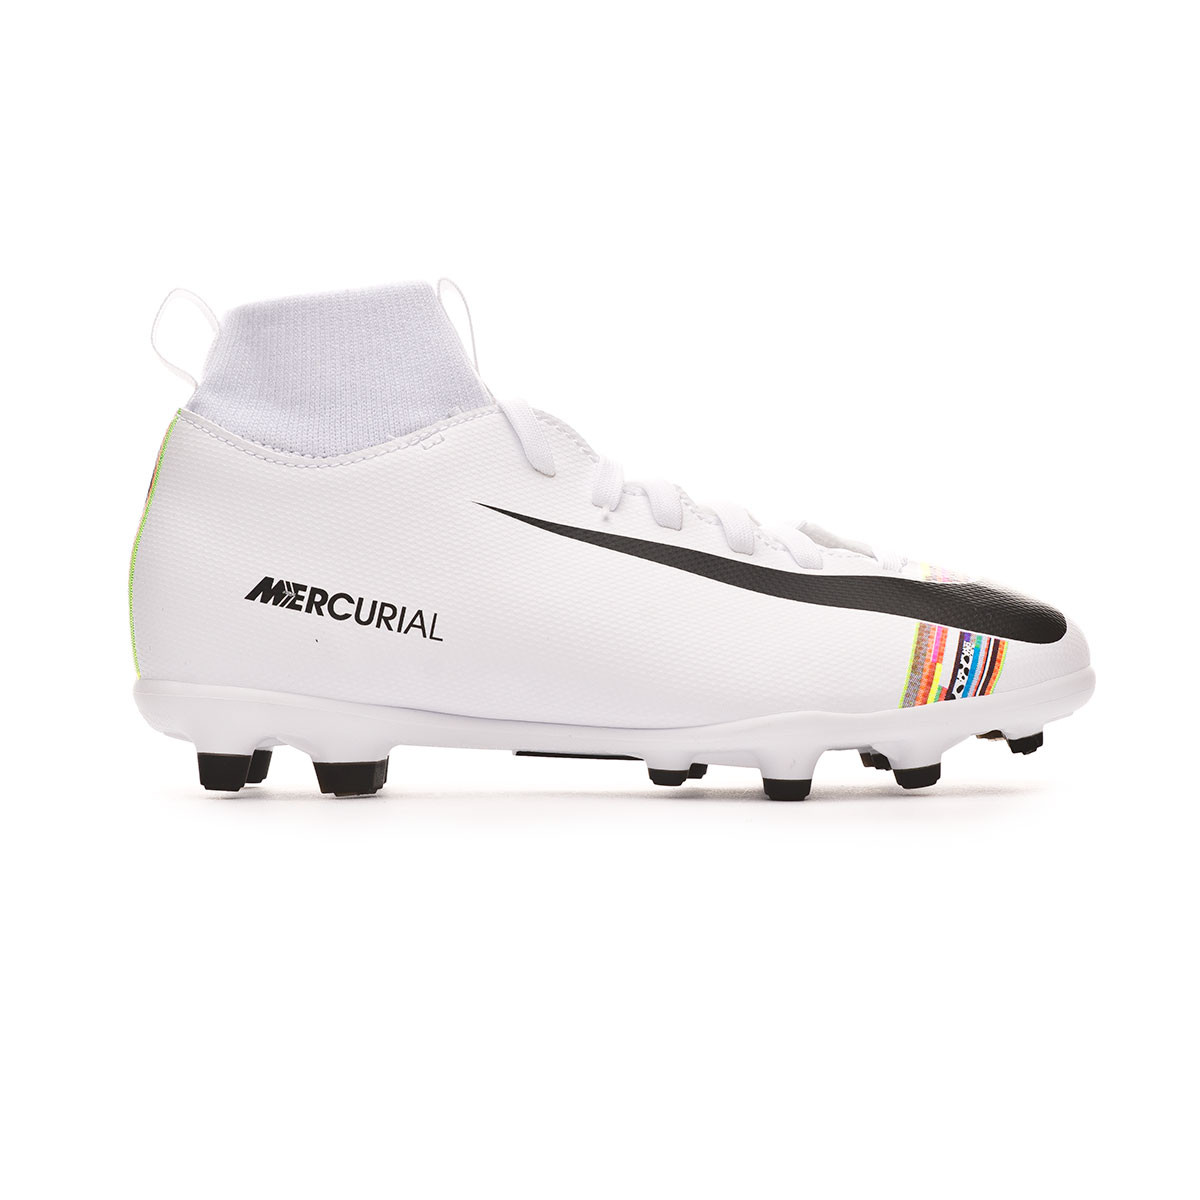 84129e7daa932 Football Boots Nike Mercurial Superfly VI Club LVL UP MG Niño White-Black -  Football store Fútbol Emotion